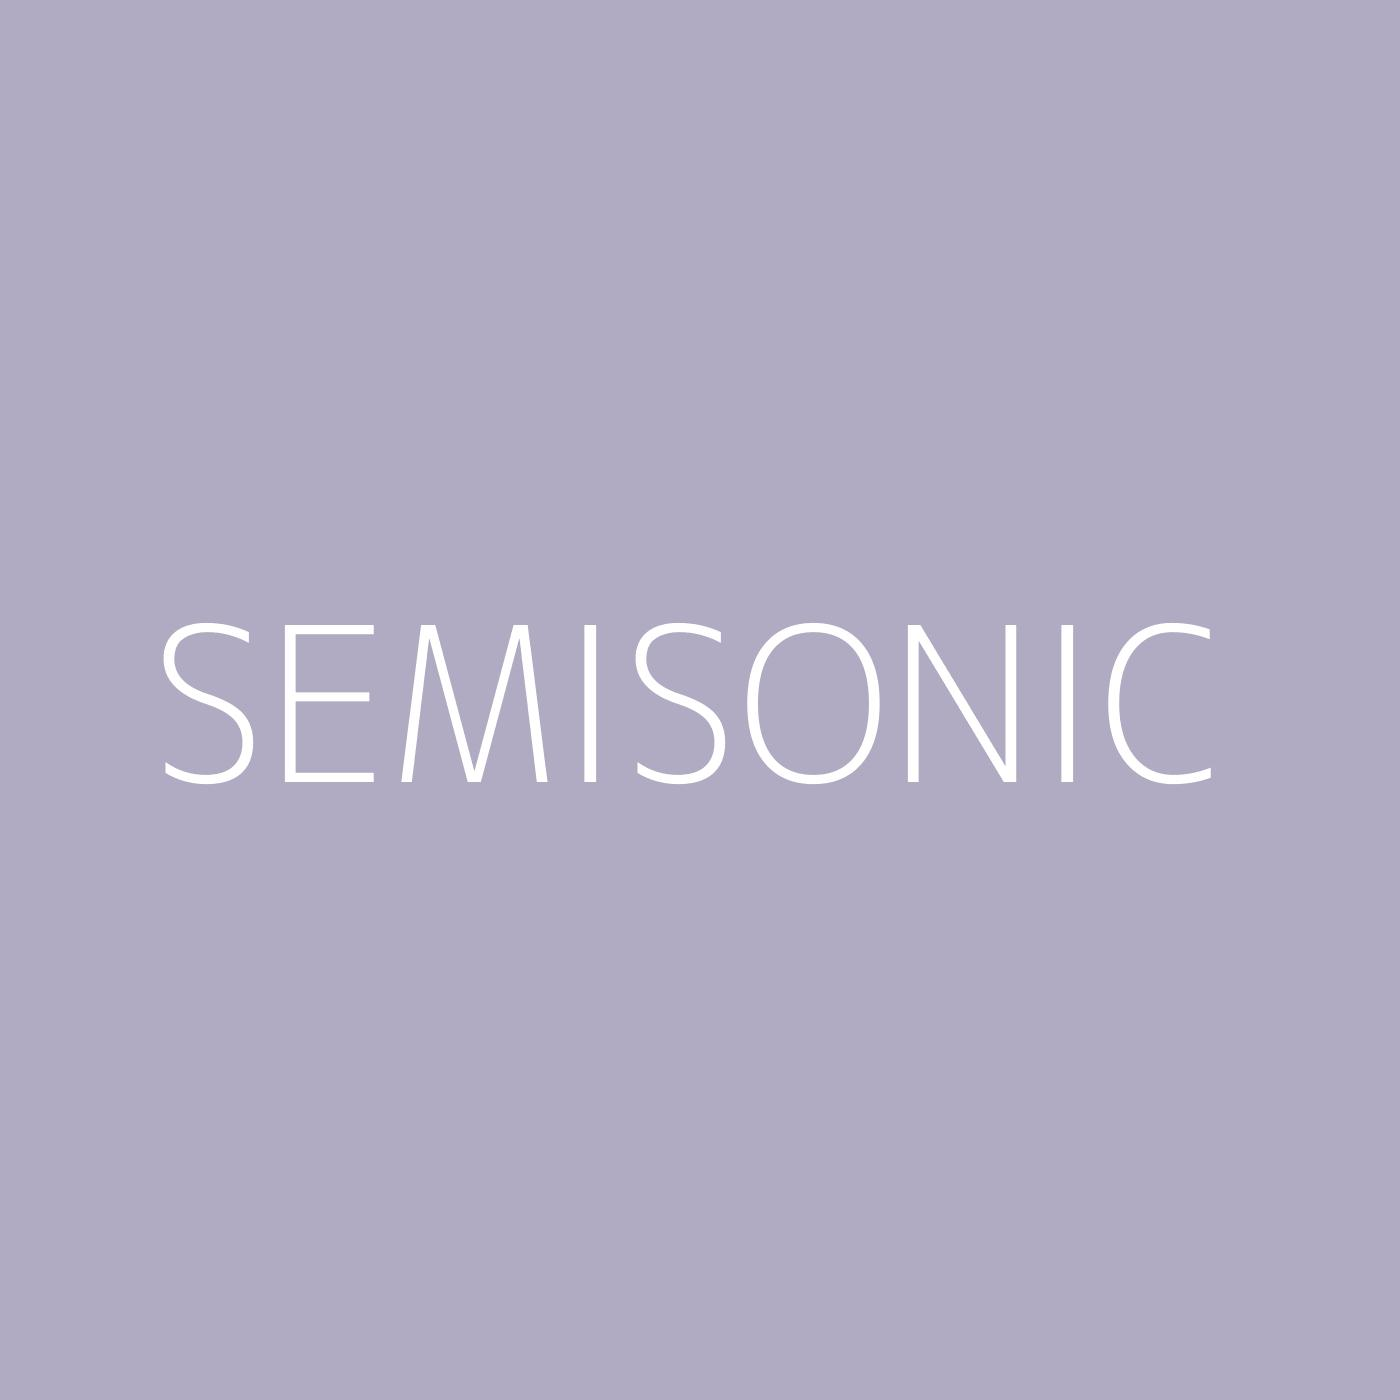 Semisonic Playlist Artwork